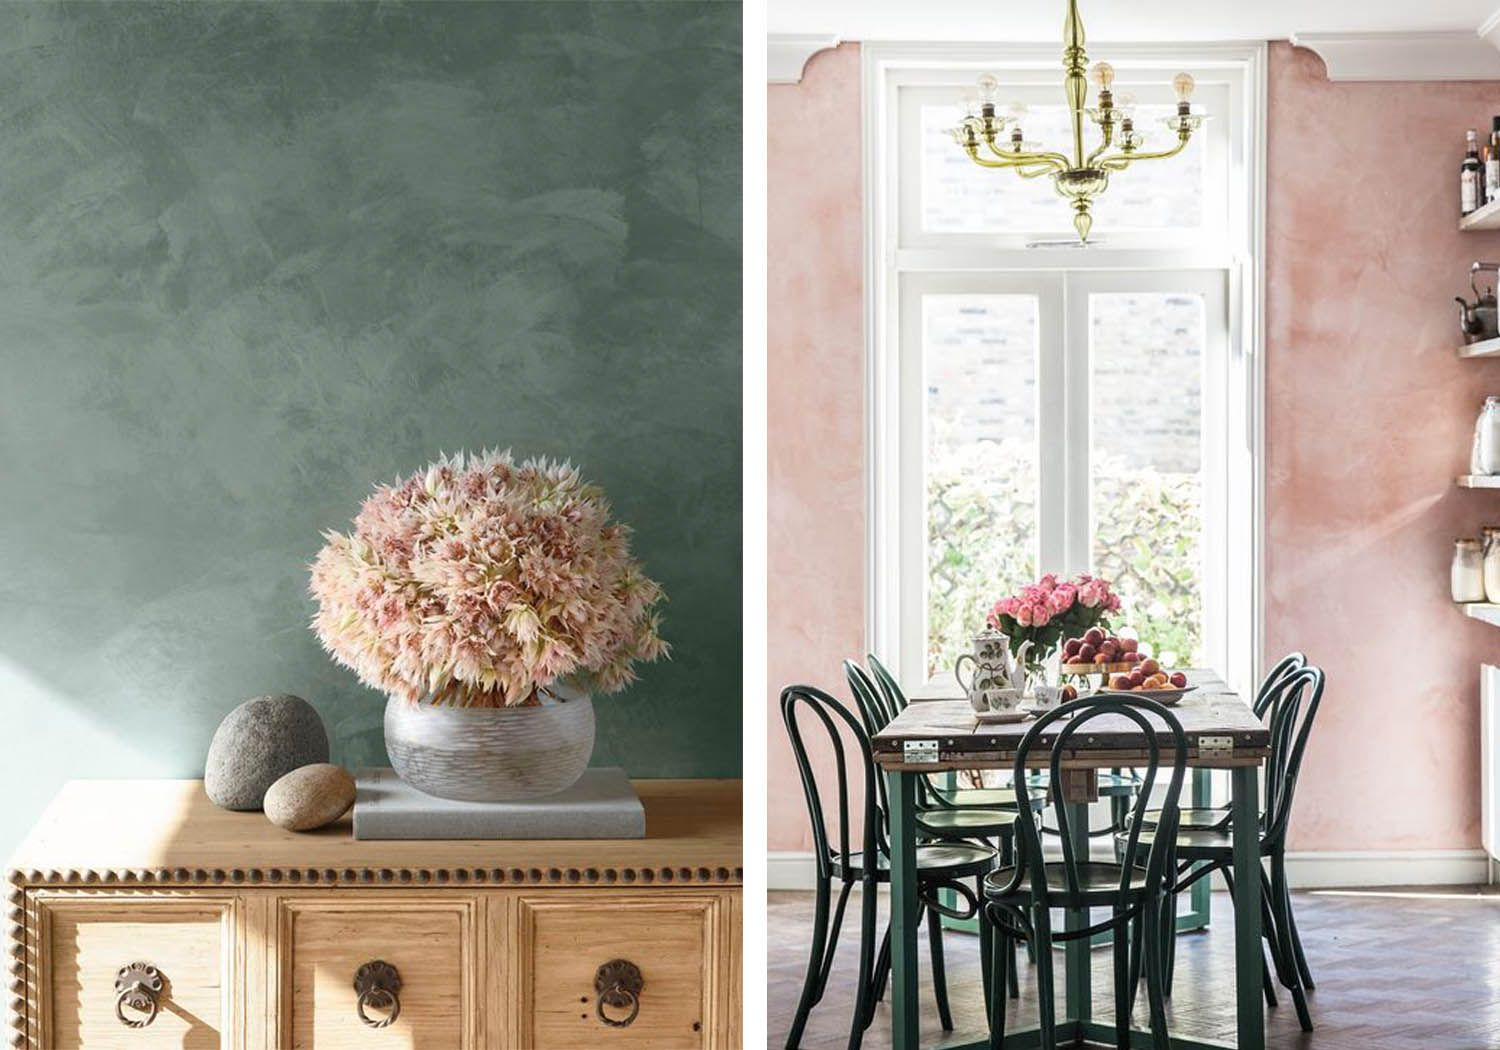 Sponge Painted Walls Whether They Are A Moody Jewel Color Or A